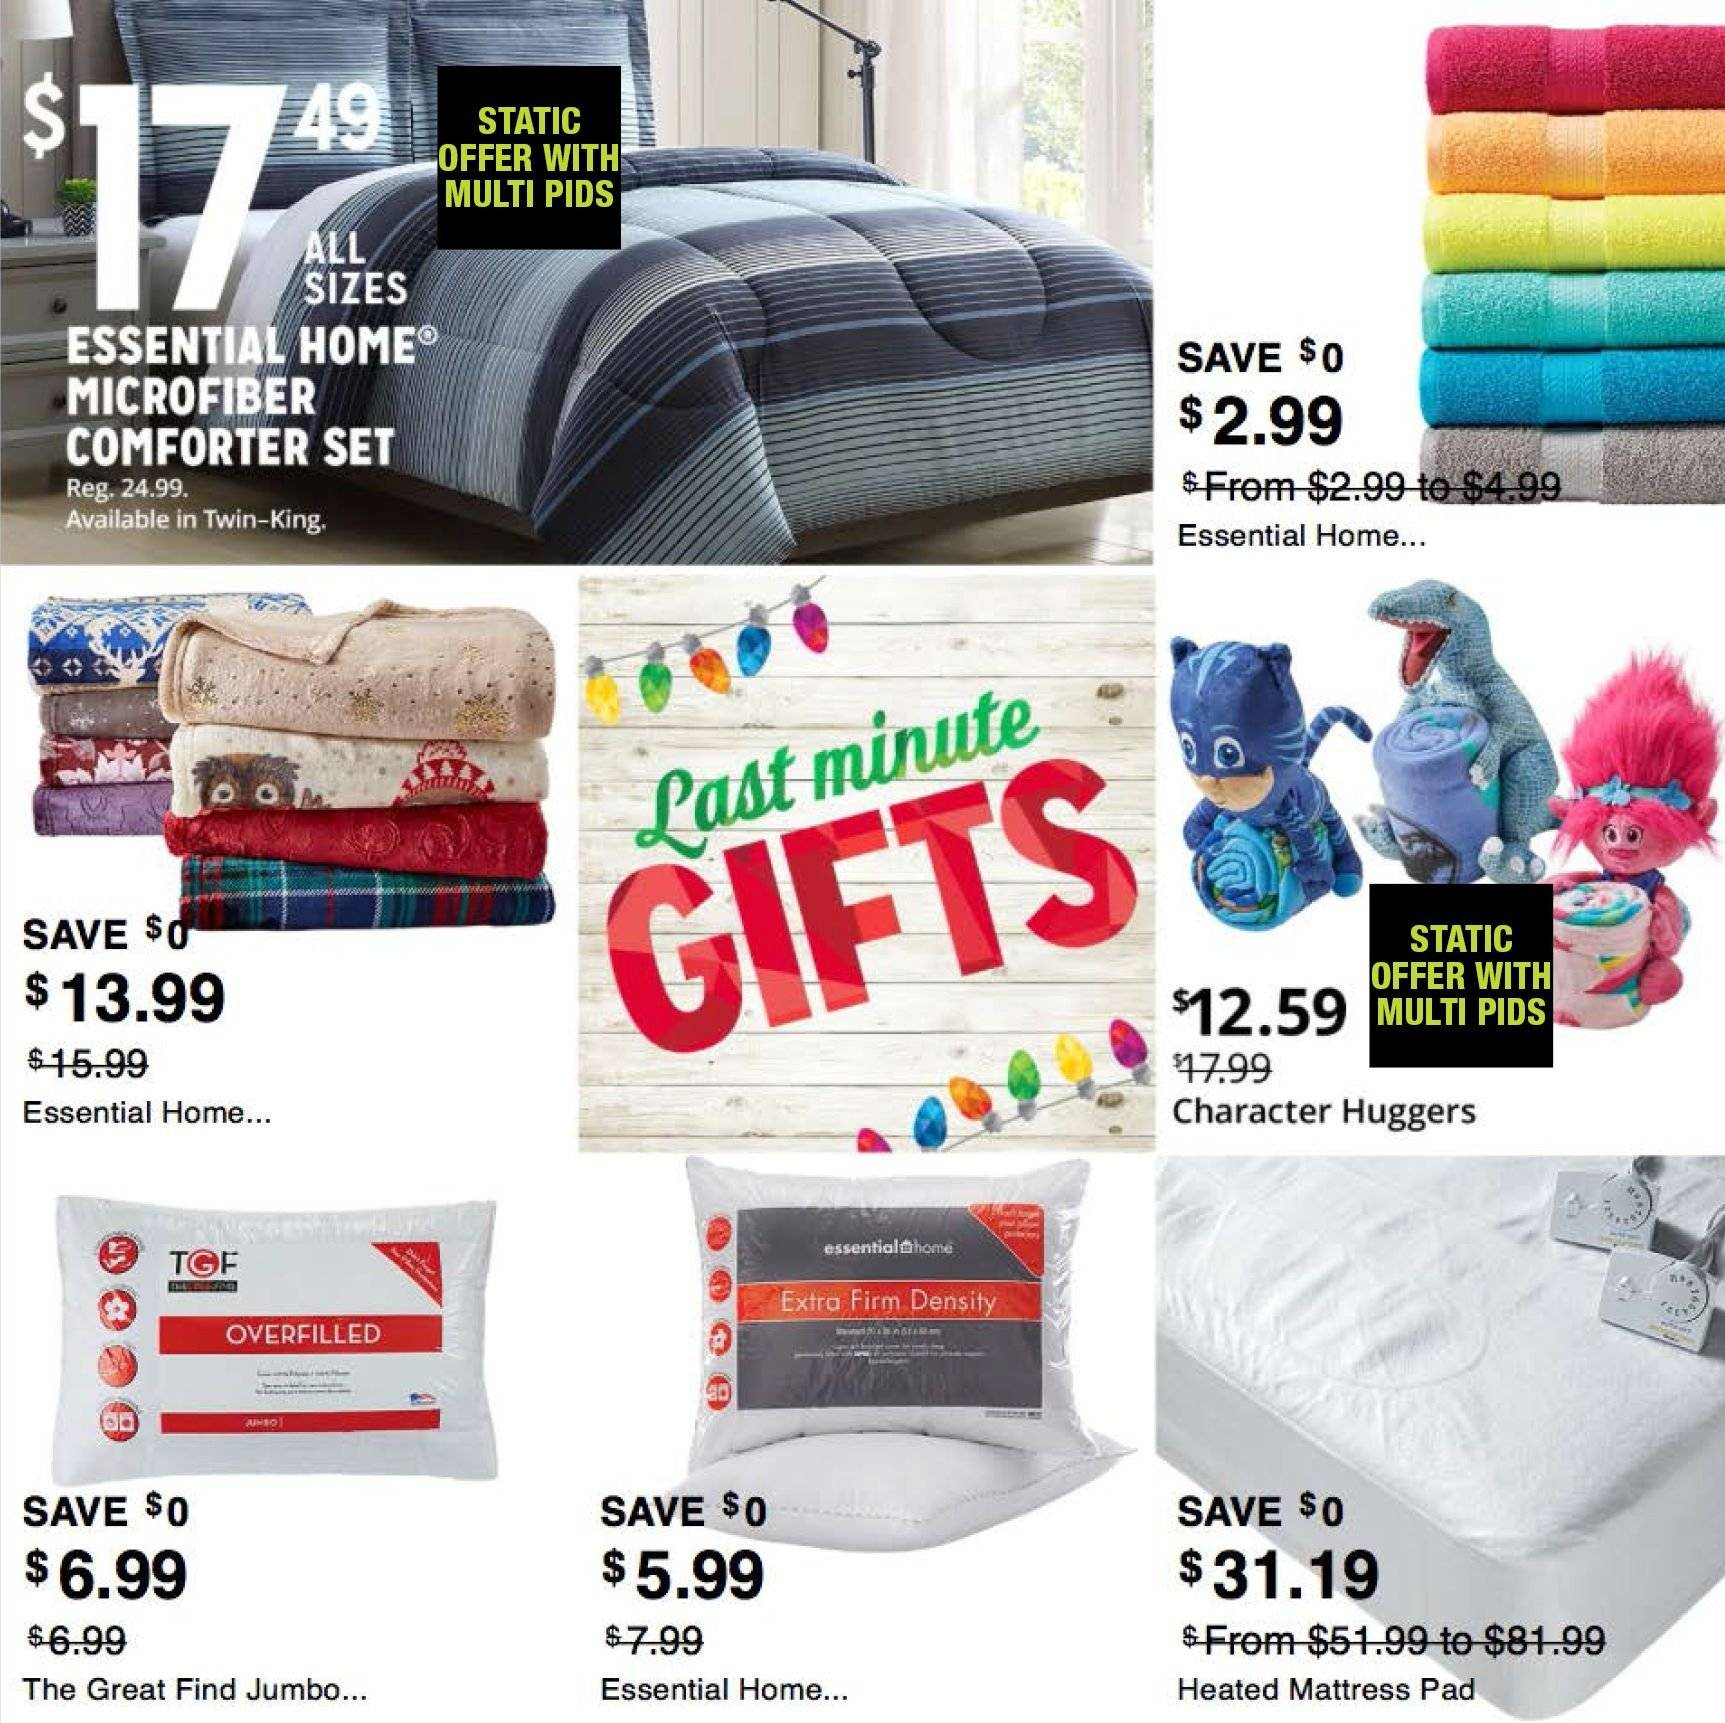 Kmart Flyer - 12.16.2018 - 12.24.2018 - Sales products - comforter set, comforter, mattress, microfiber, pad. Page 5.